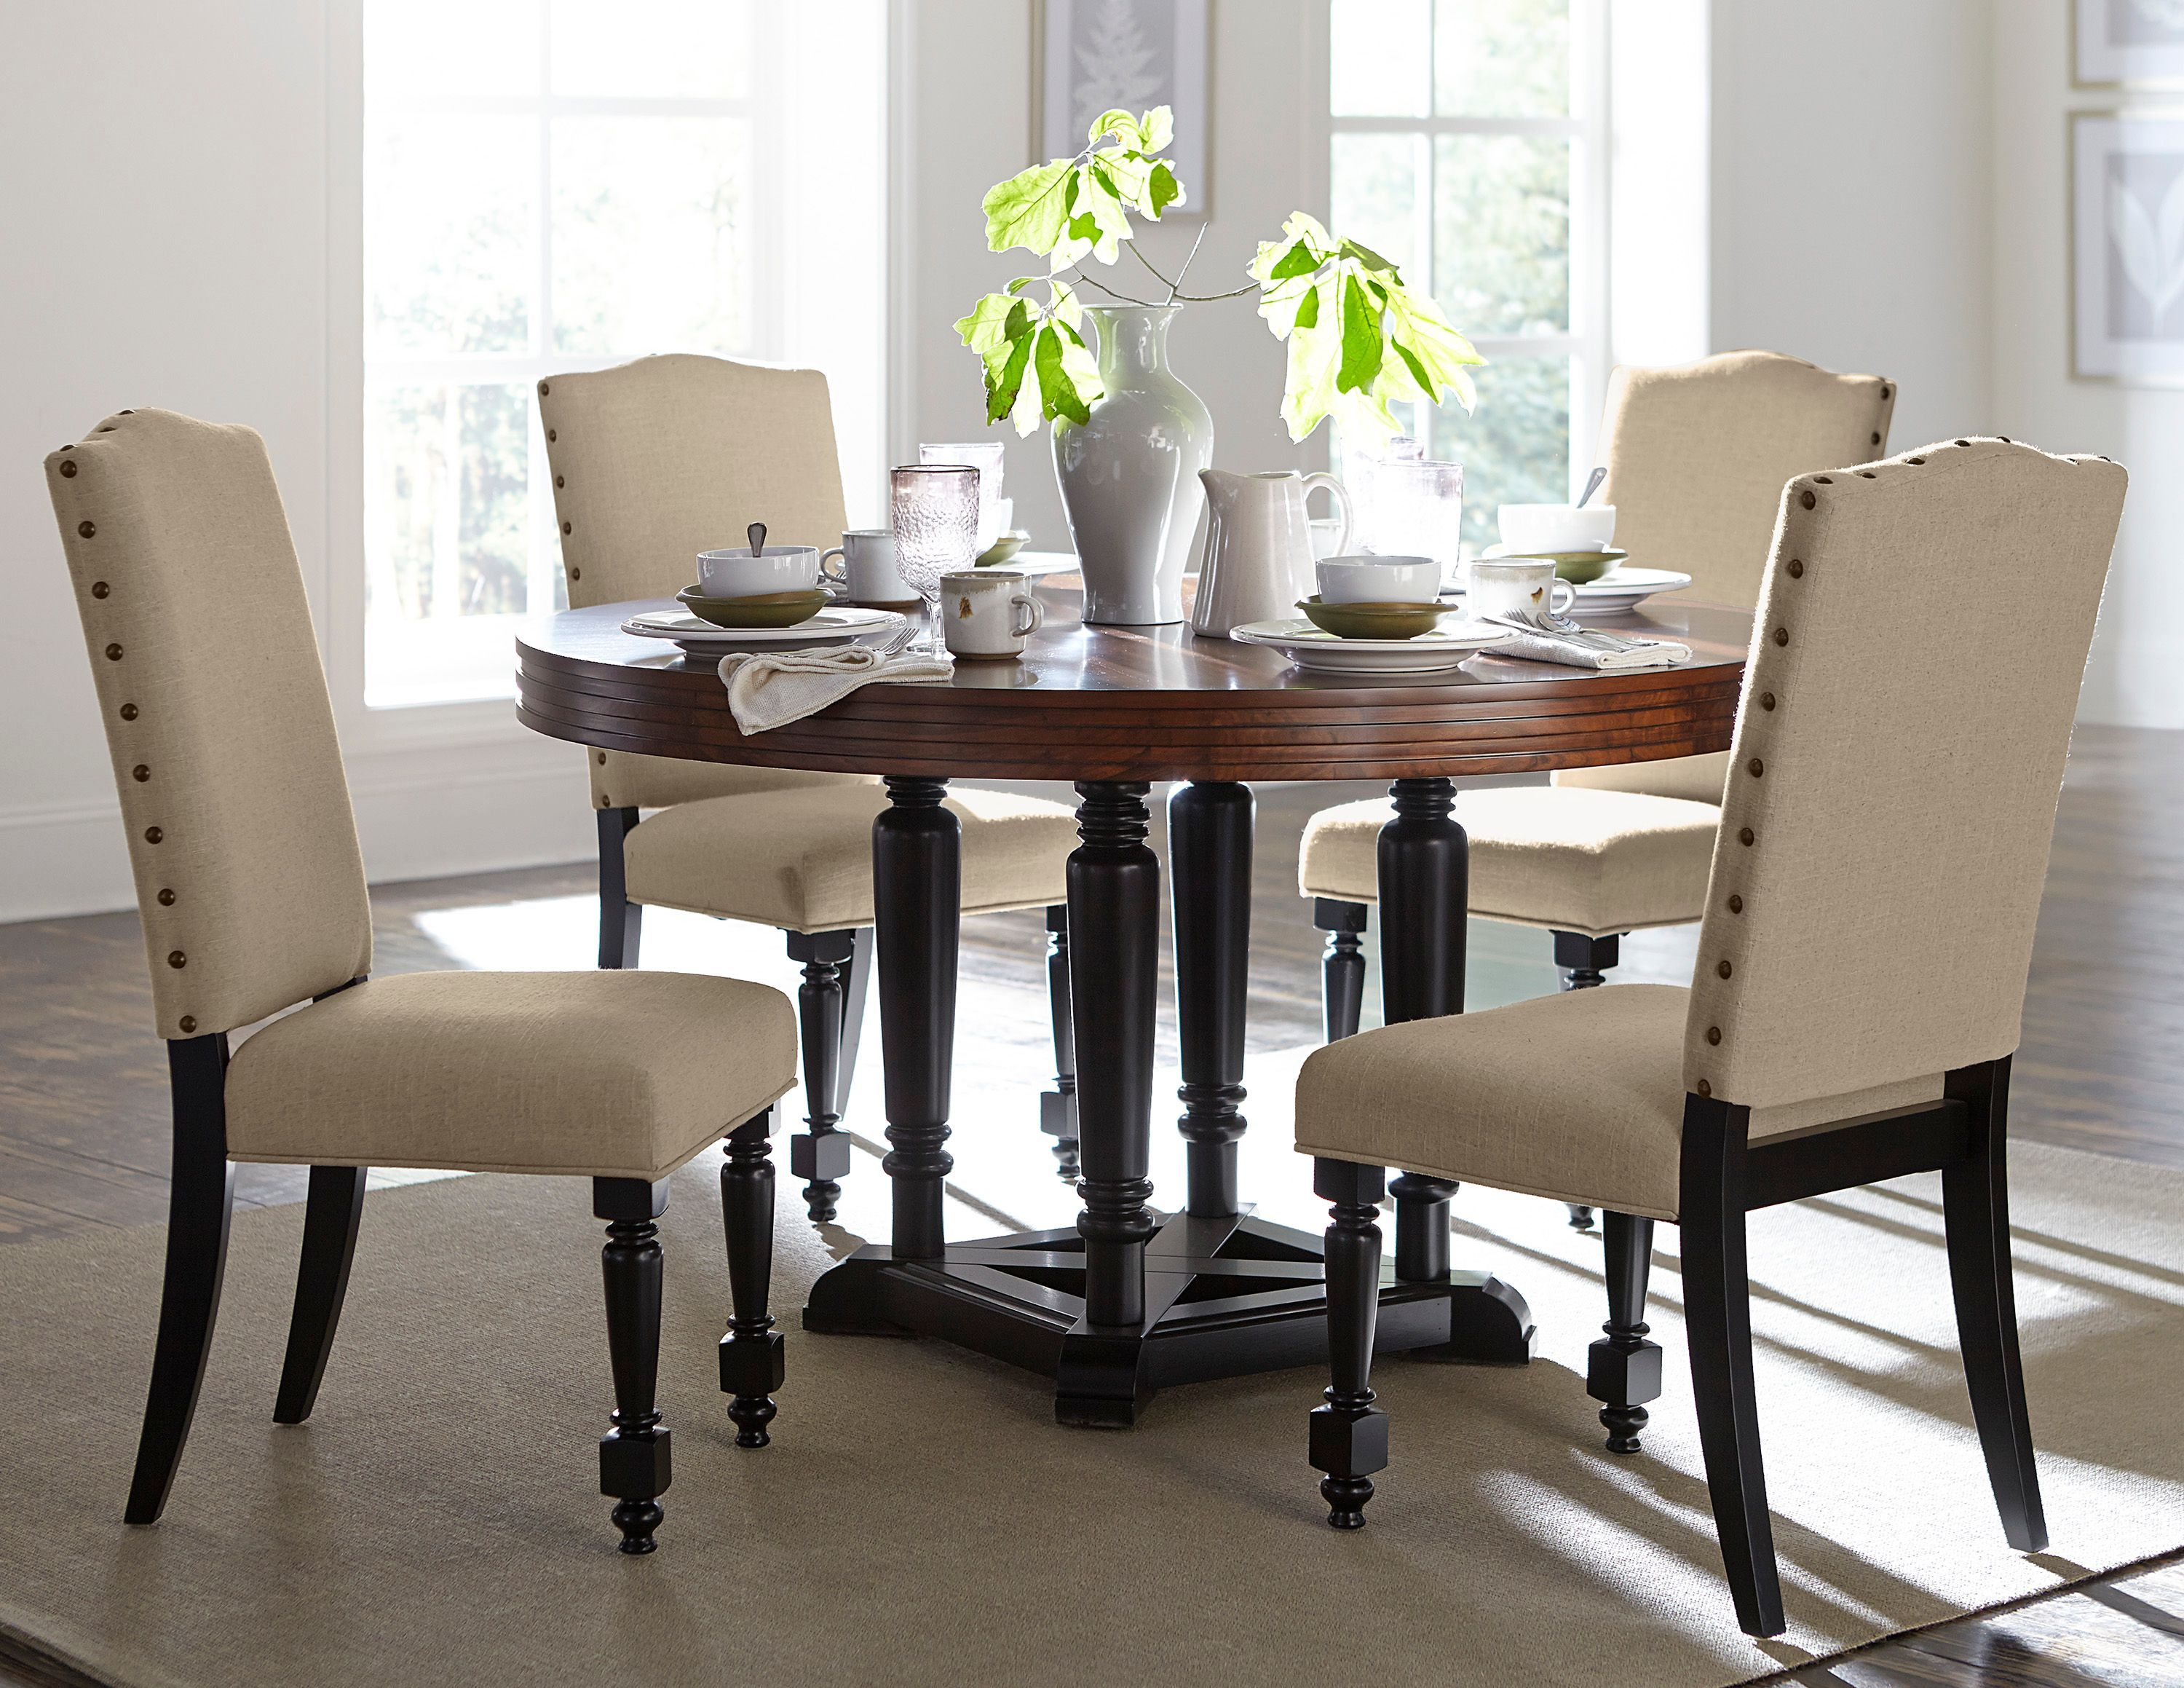 Blossomwood Black/Beige 9 Piece Dining Set   RC Willey Home ...